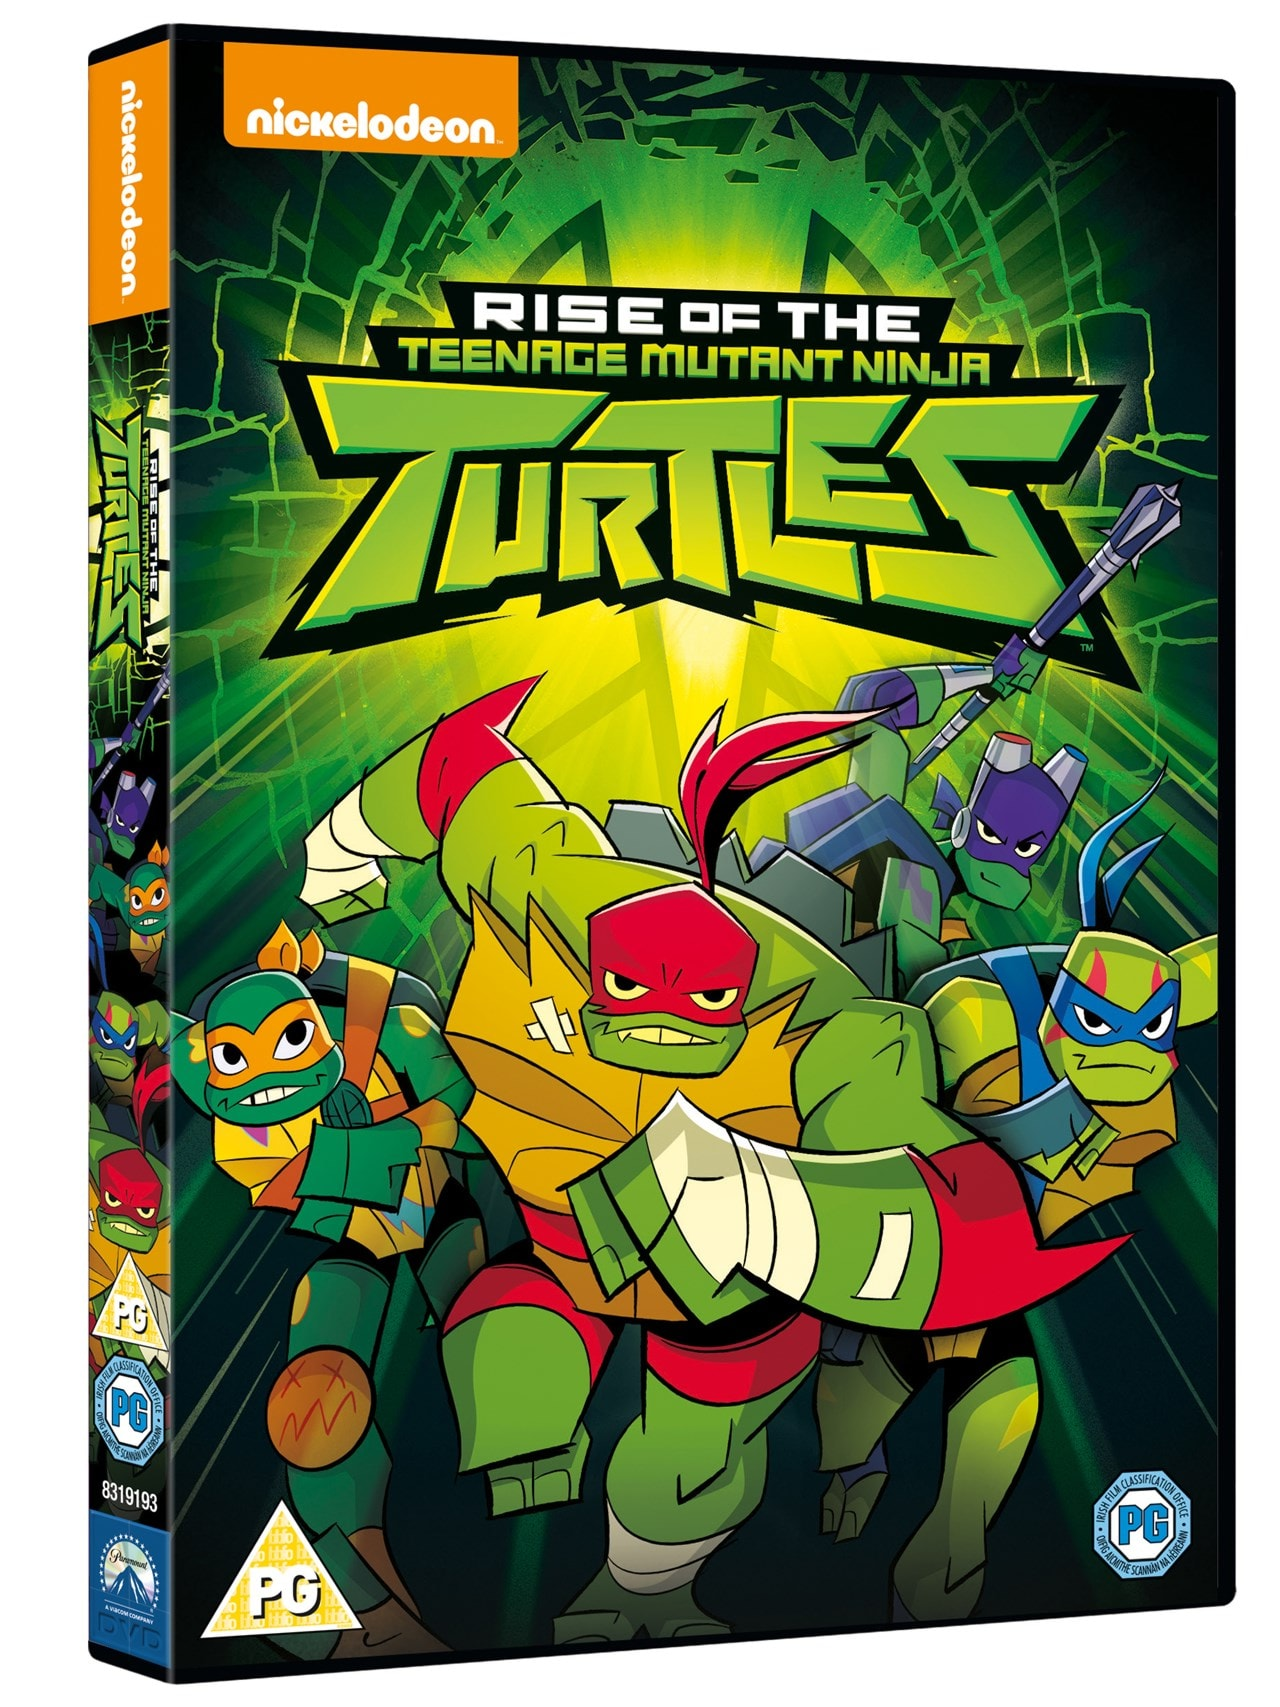 Rise of the Teenage Mutant Ninja Turtles - 2